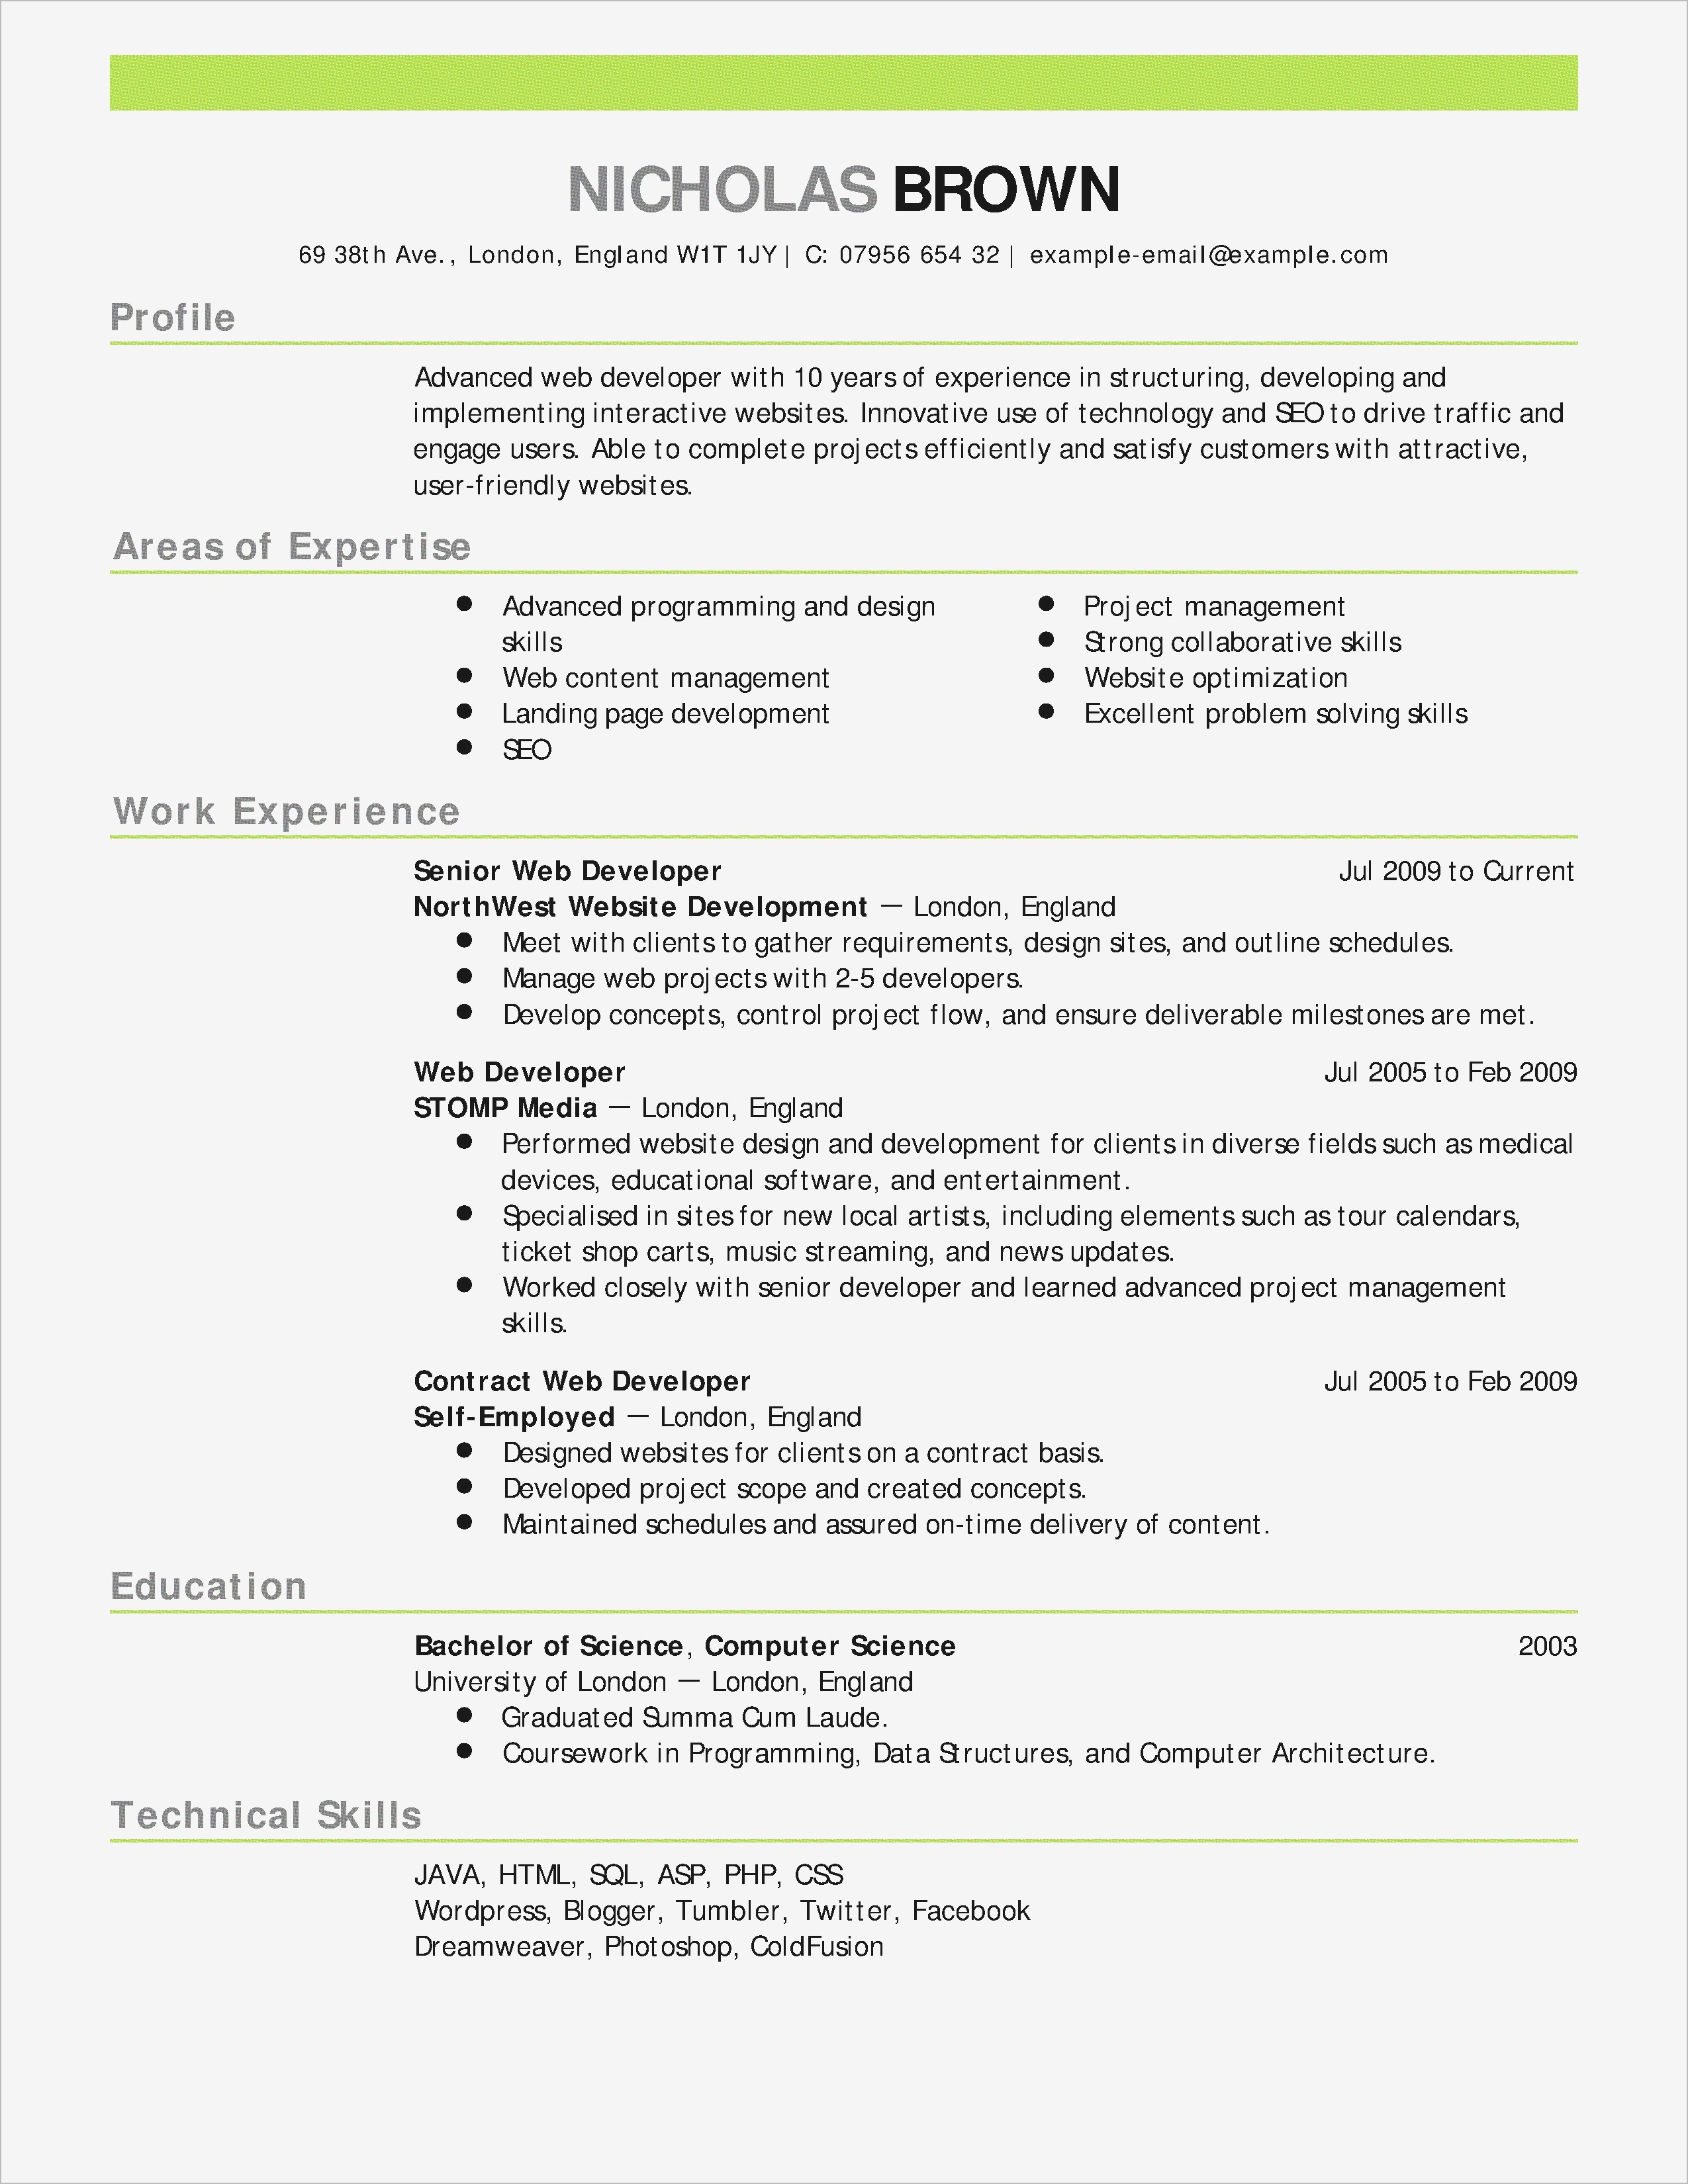 attorney letter template example-legal cover letter template writing the best cover letter new elegant cover letter writing service awesome paralegal resume 0d 10c 4-s